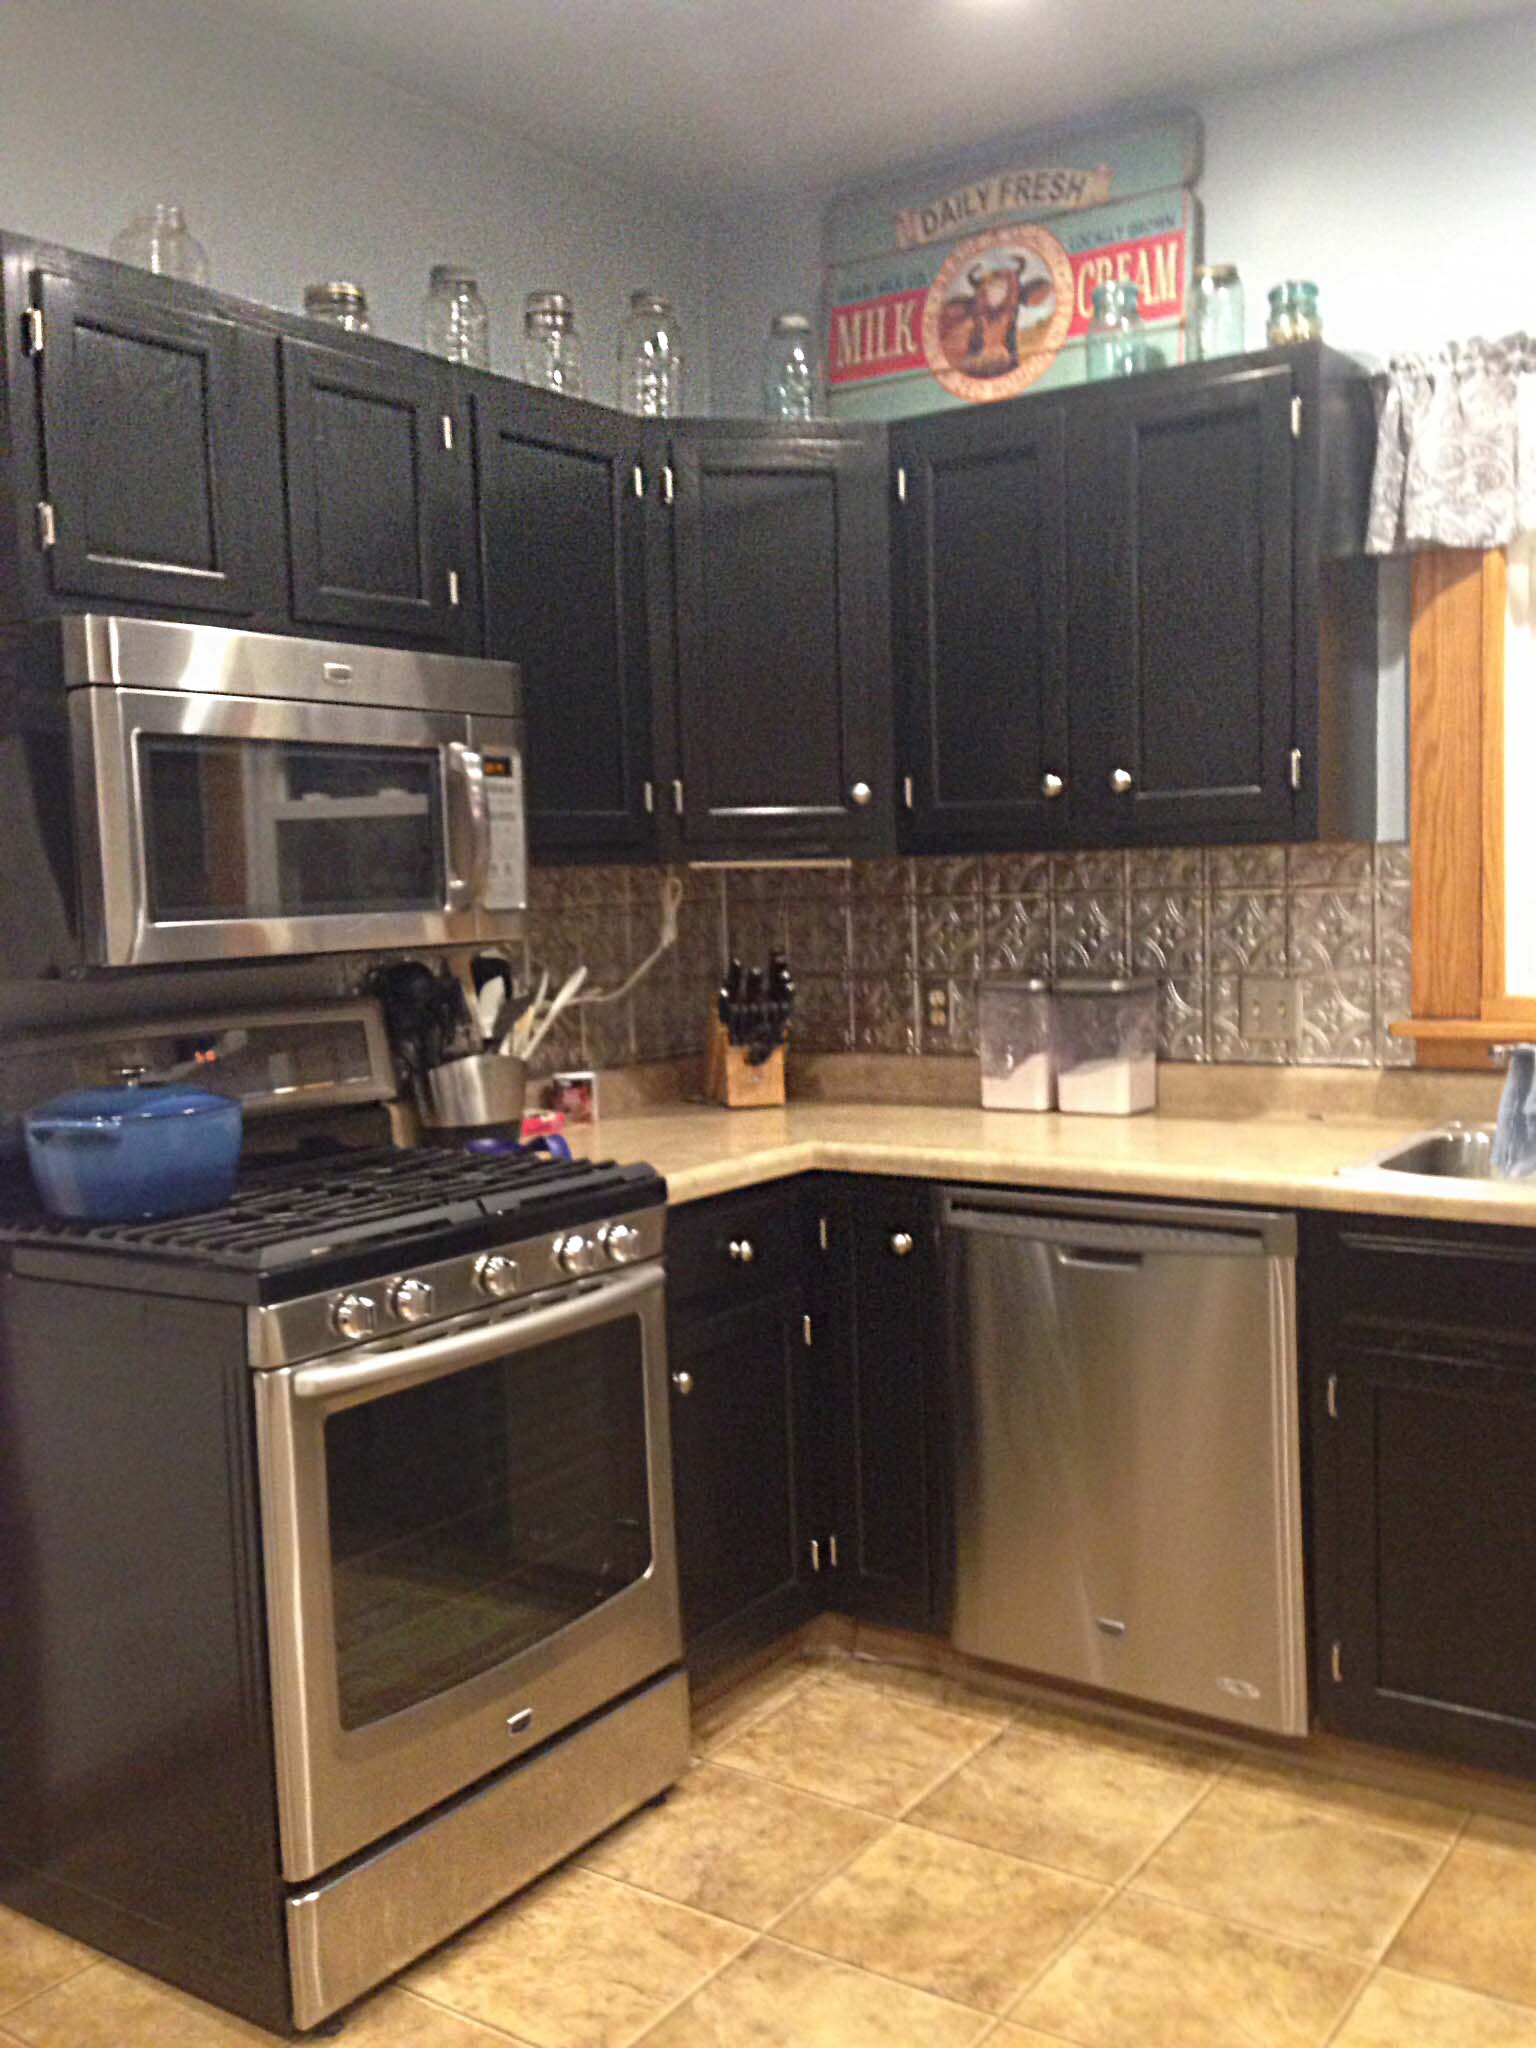 scd general finishes gel stain black kitchen cabinets chris d 20150211